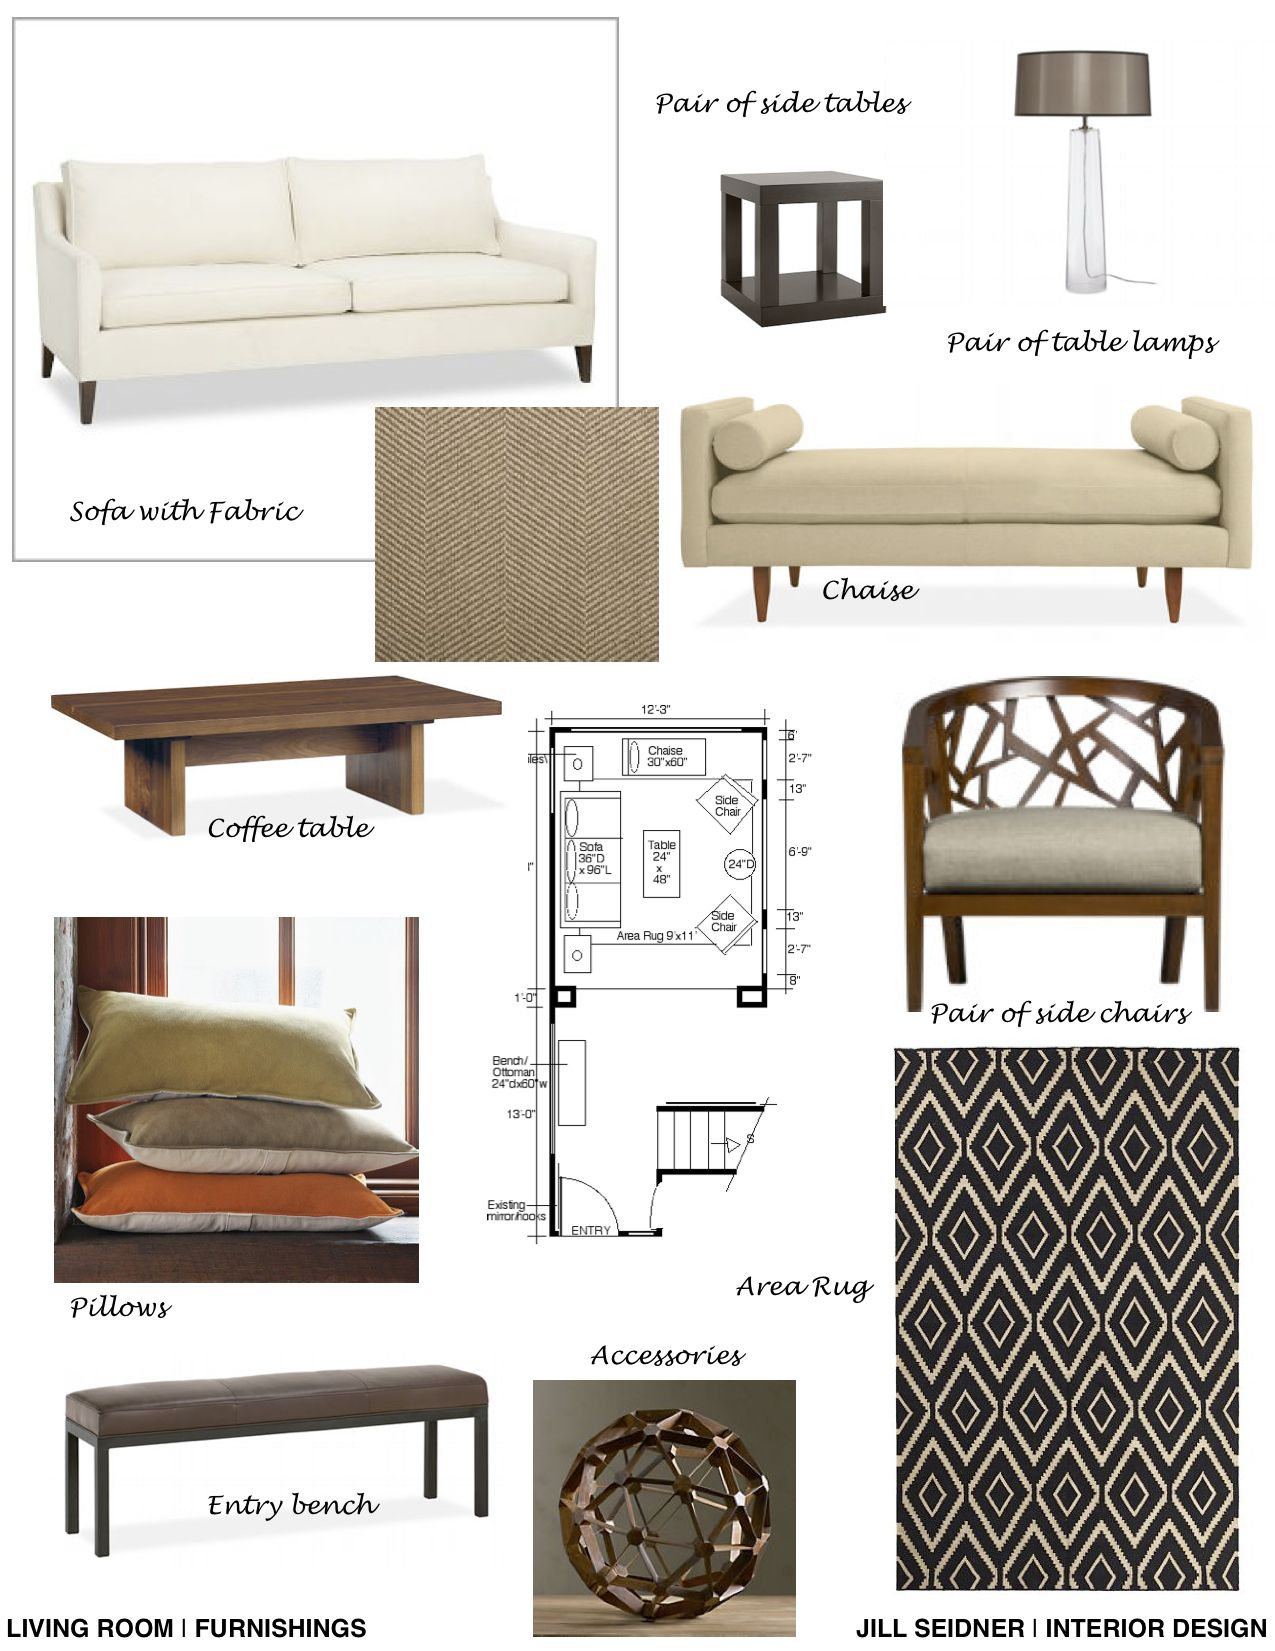 Help Designing A Room: Concept Board For Furnishings For A Living Room Project